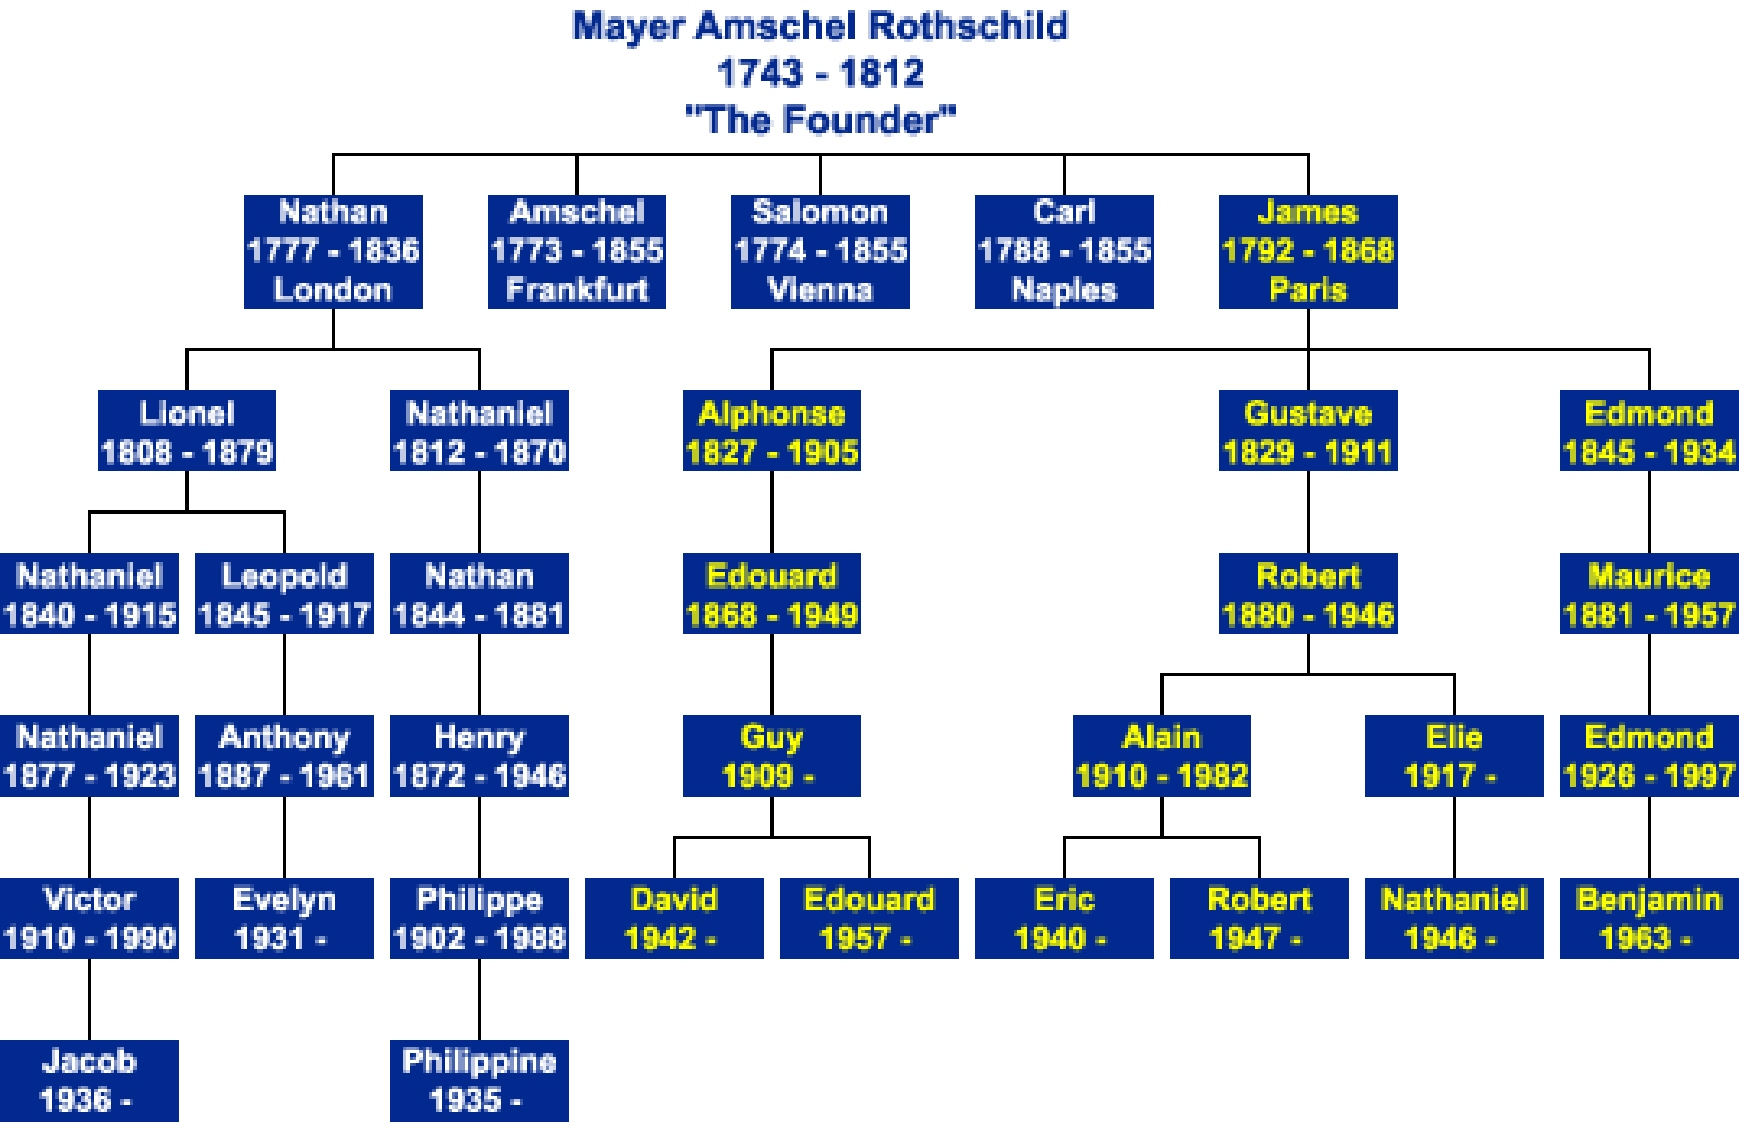 Rothschild family tree